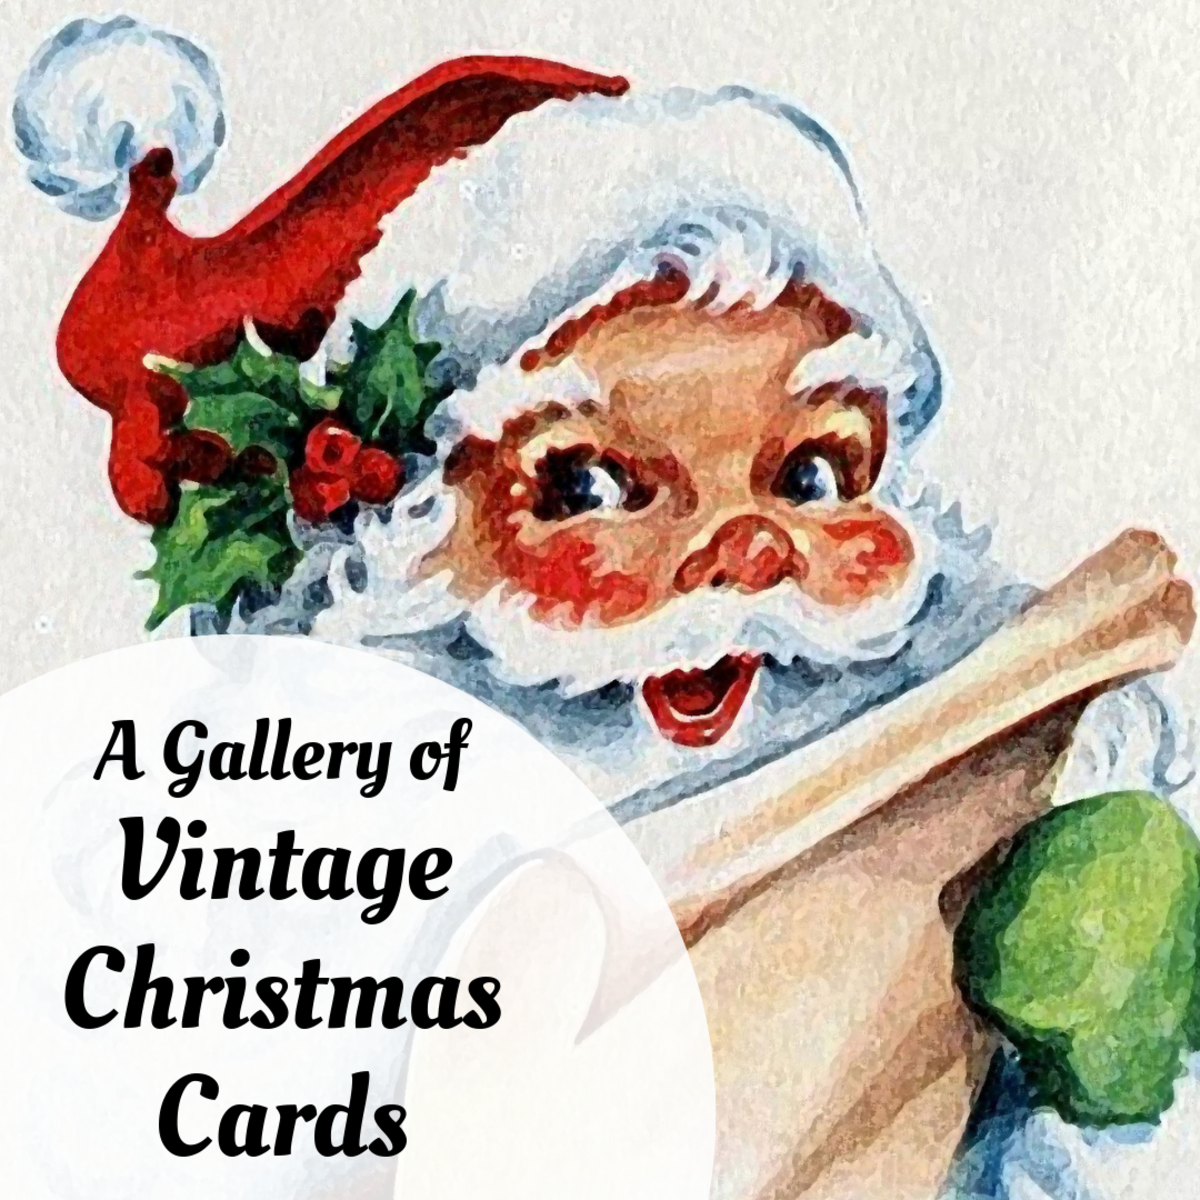 Vintage Christmas Art: Images of Antique, Nostalgic Holiday Greetings